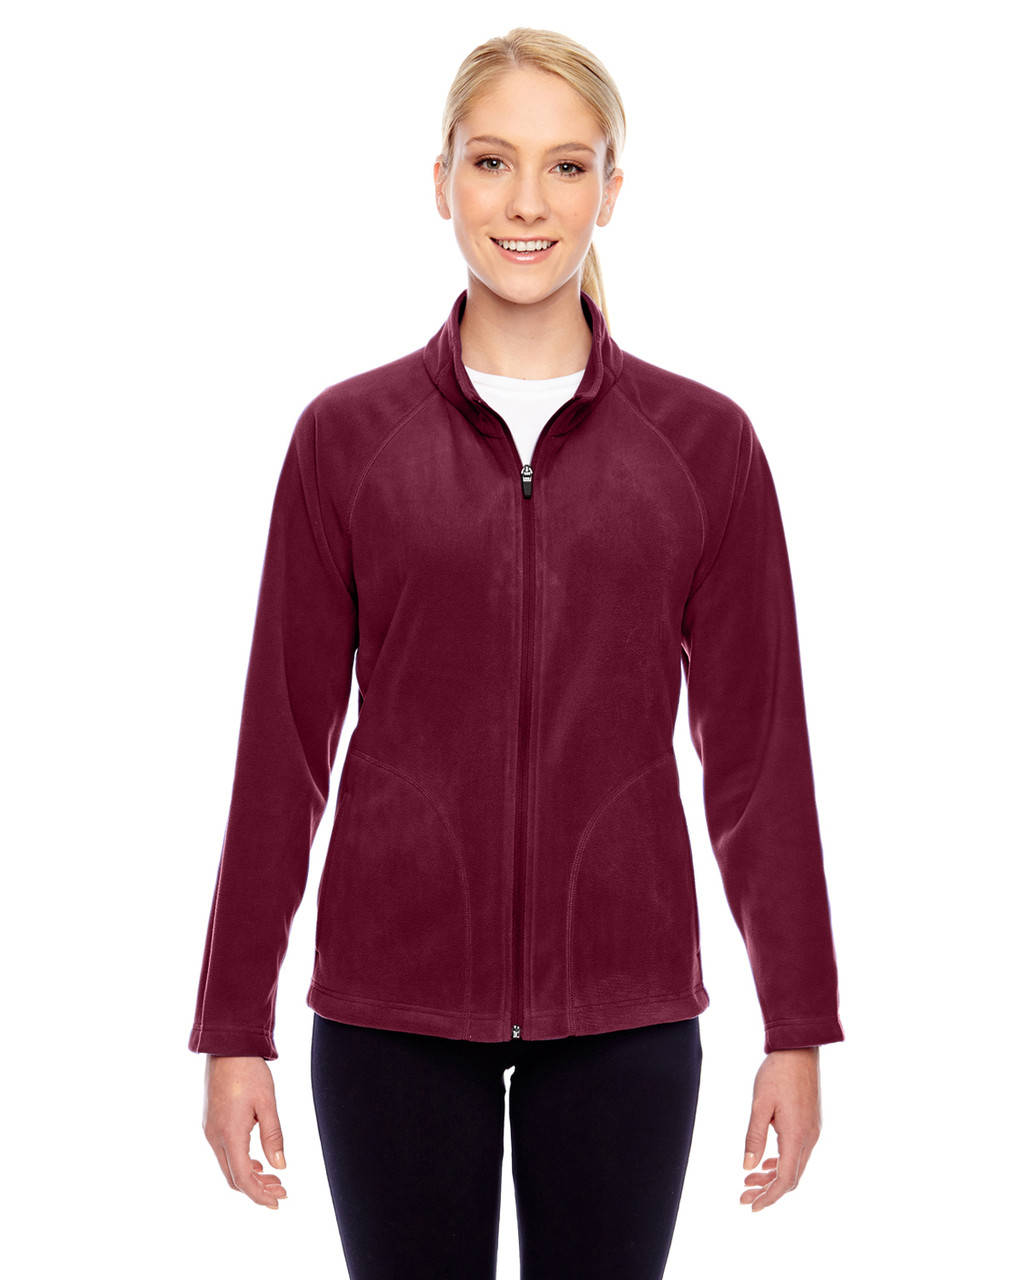 Maroon - TT90W Team 365 Ladies' Campus Microfleece Jacket | BlankClothing.ca